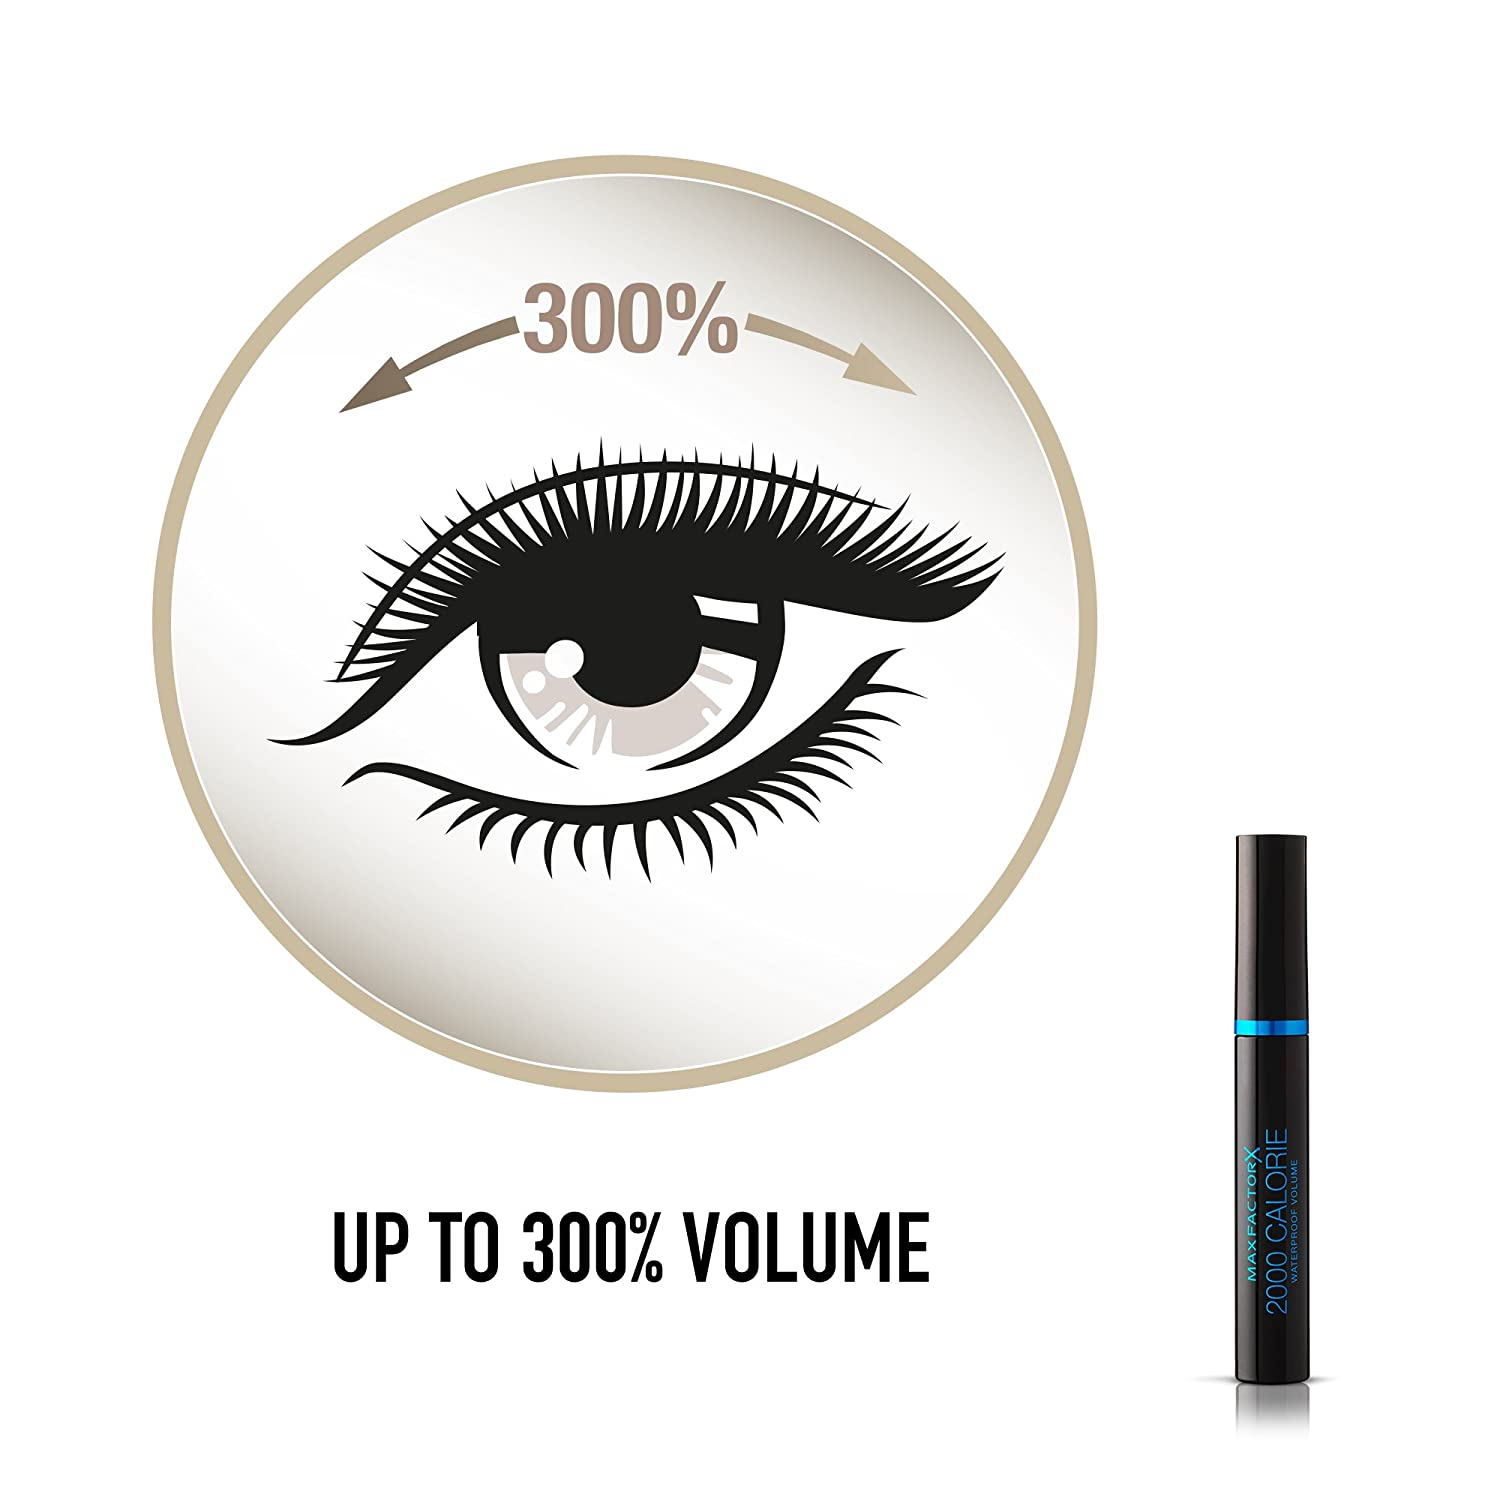 6696bee187a Max Factor 2000 Calorie Waterproof Volume Mascara, Smudge Proof, Black, 9  ml: Amazon.co.uk: Beauty